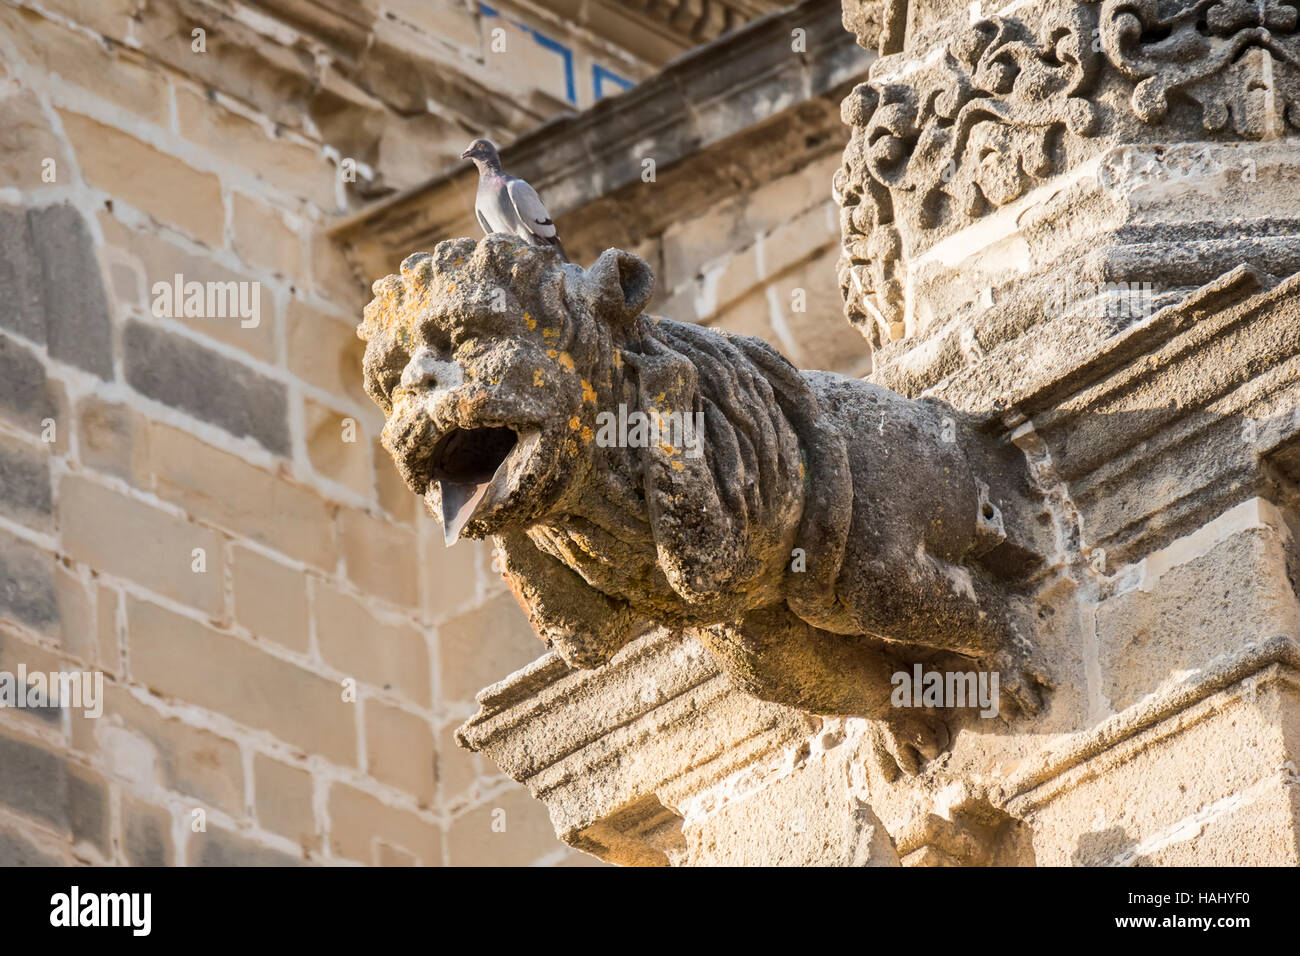 Gargoyle protruding from the facade of a cathedral - Stock Image